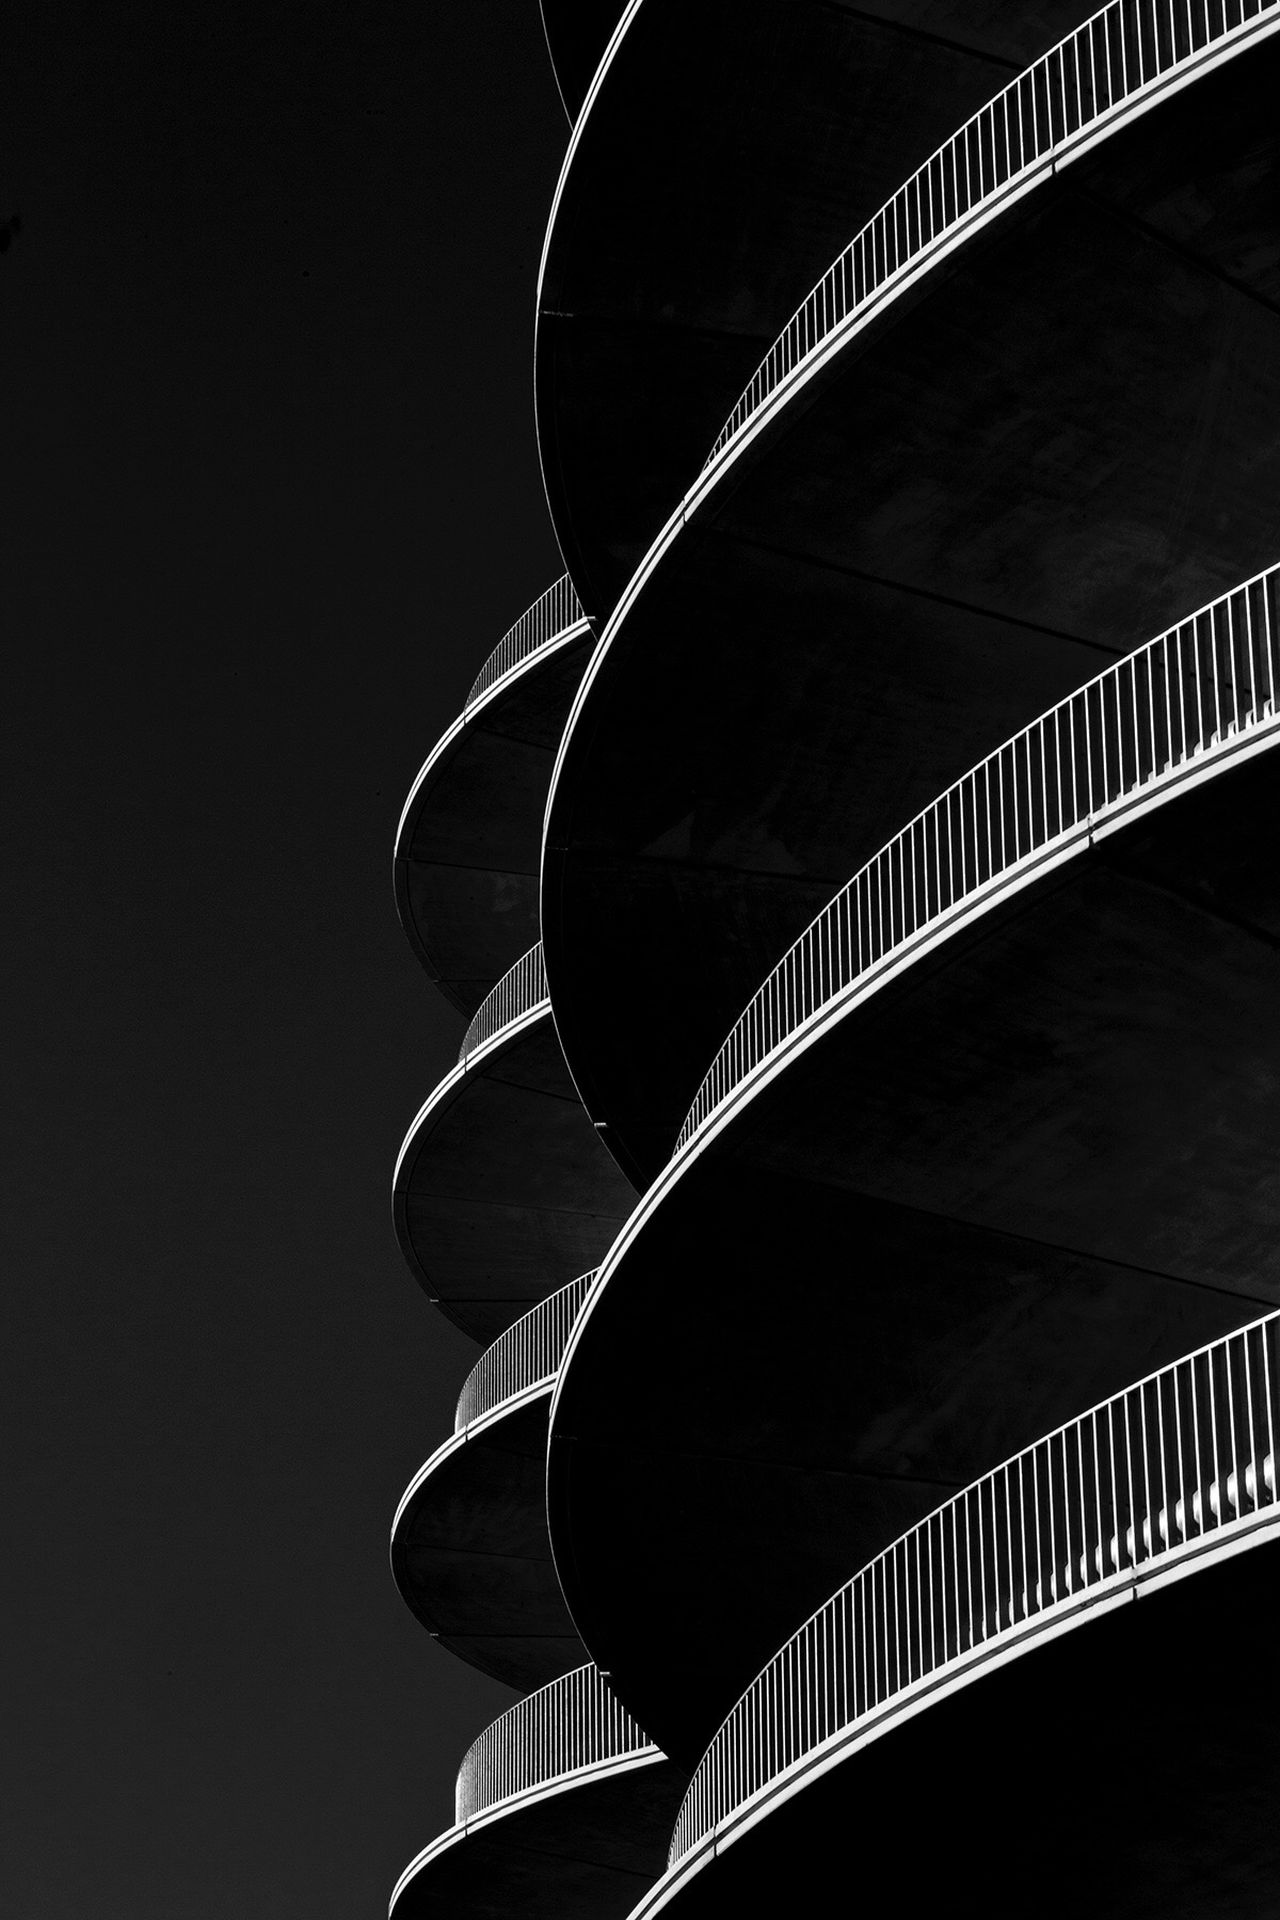 Architecture Pattern, texture, shape and form Black Background no people City built structure Modern details architecture_collection architecture architecture photography architecturephotography architectureporn architectural feature Architecture_collection architecturelovers